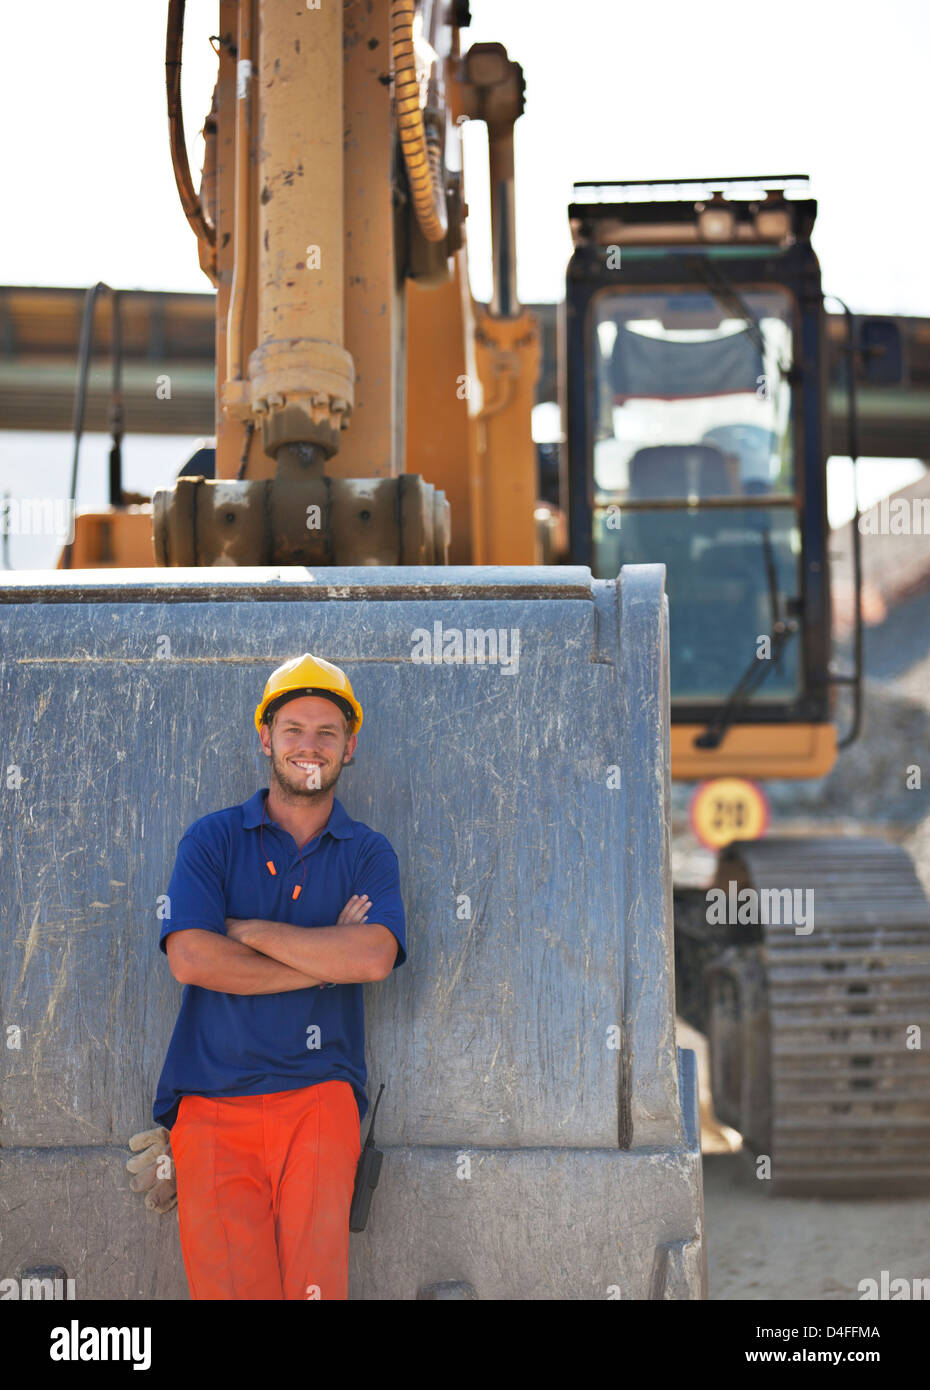 Worker standing by digger on site - Stock Image